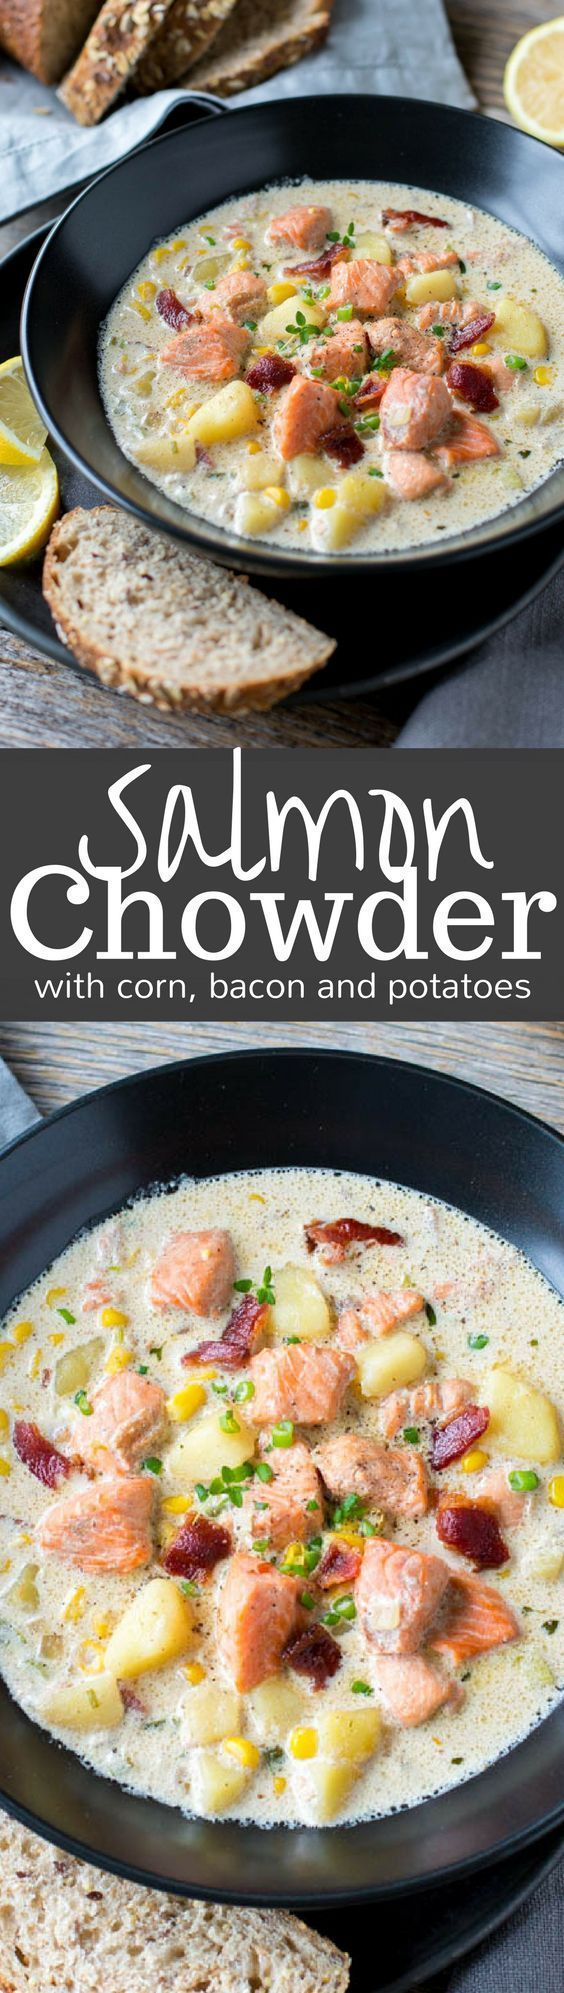 Salmon Chowder with potatoes, bacon and corn - an incredible soup that's richly satisfying, hearty, surprisingly filling and not at all fishy! http://www.savingdessert.com